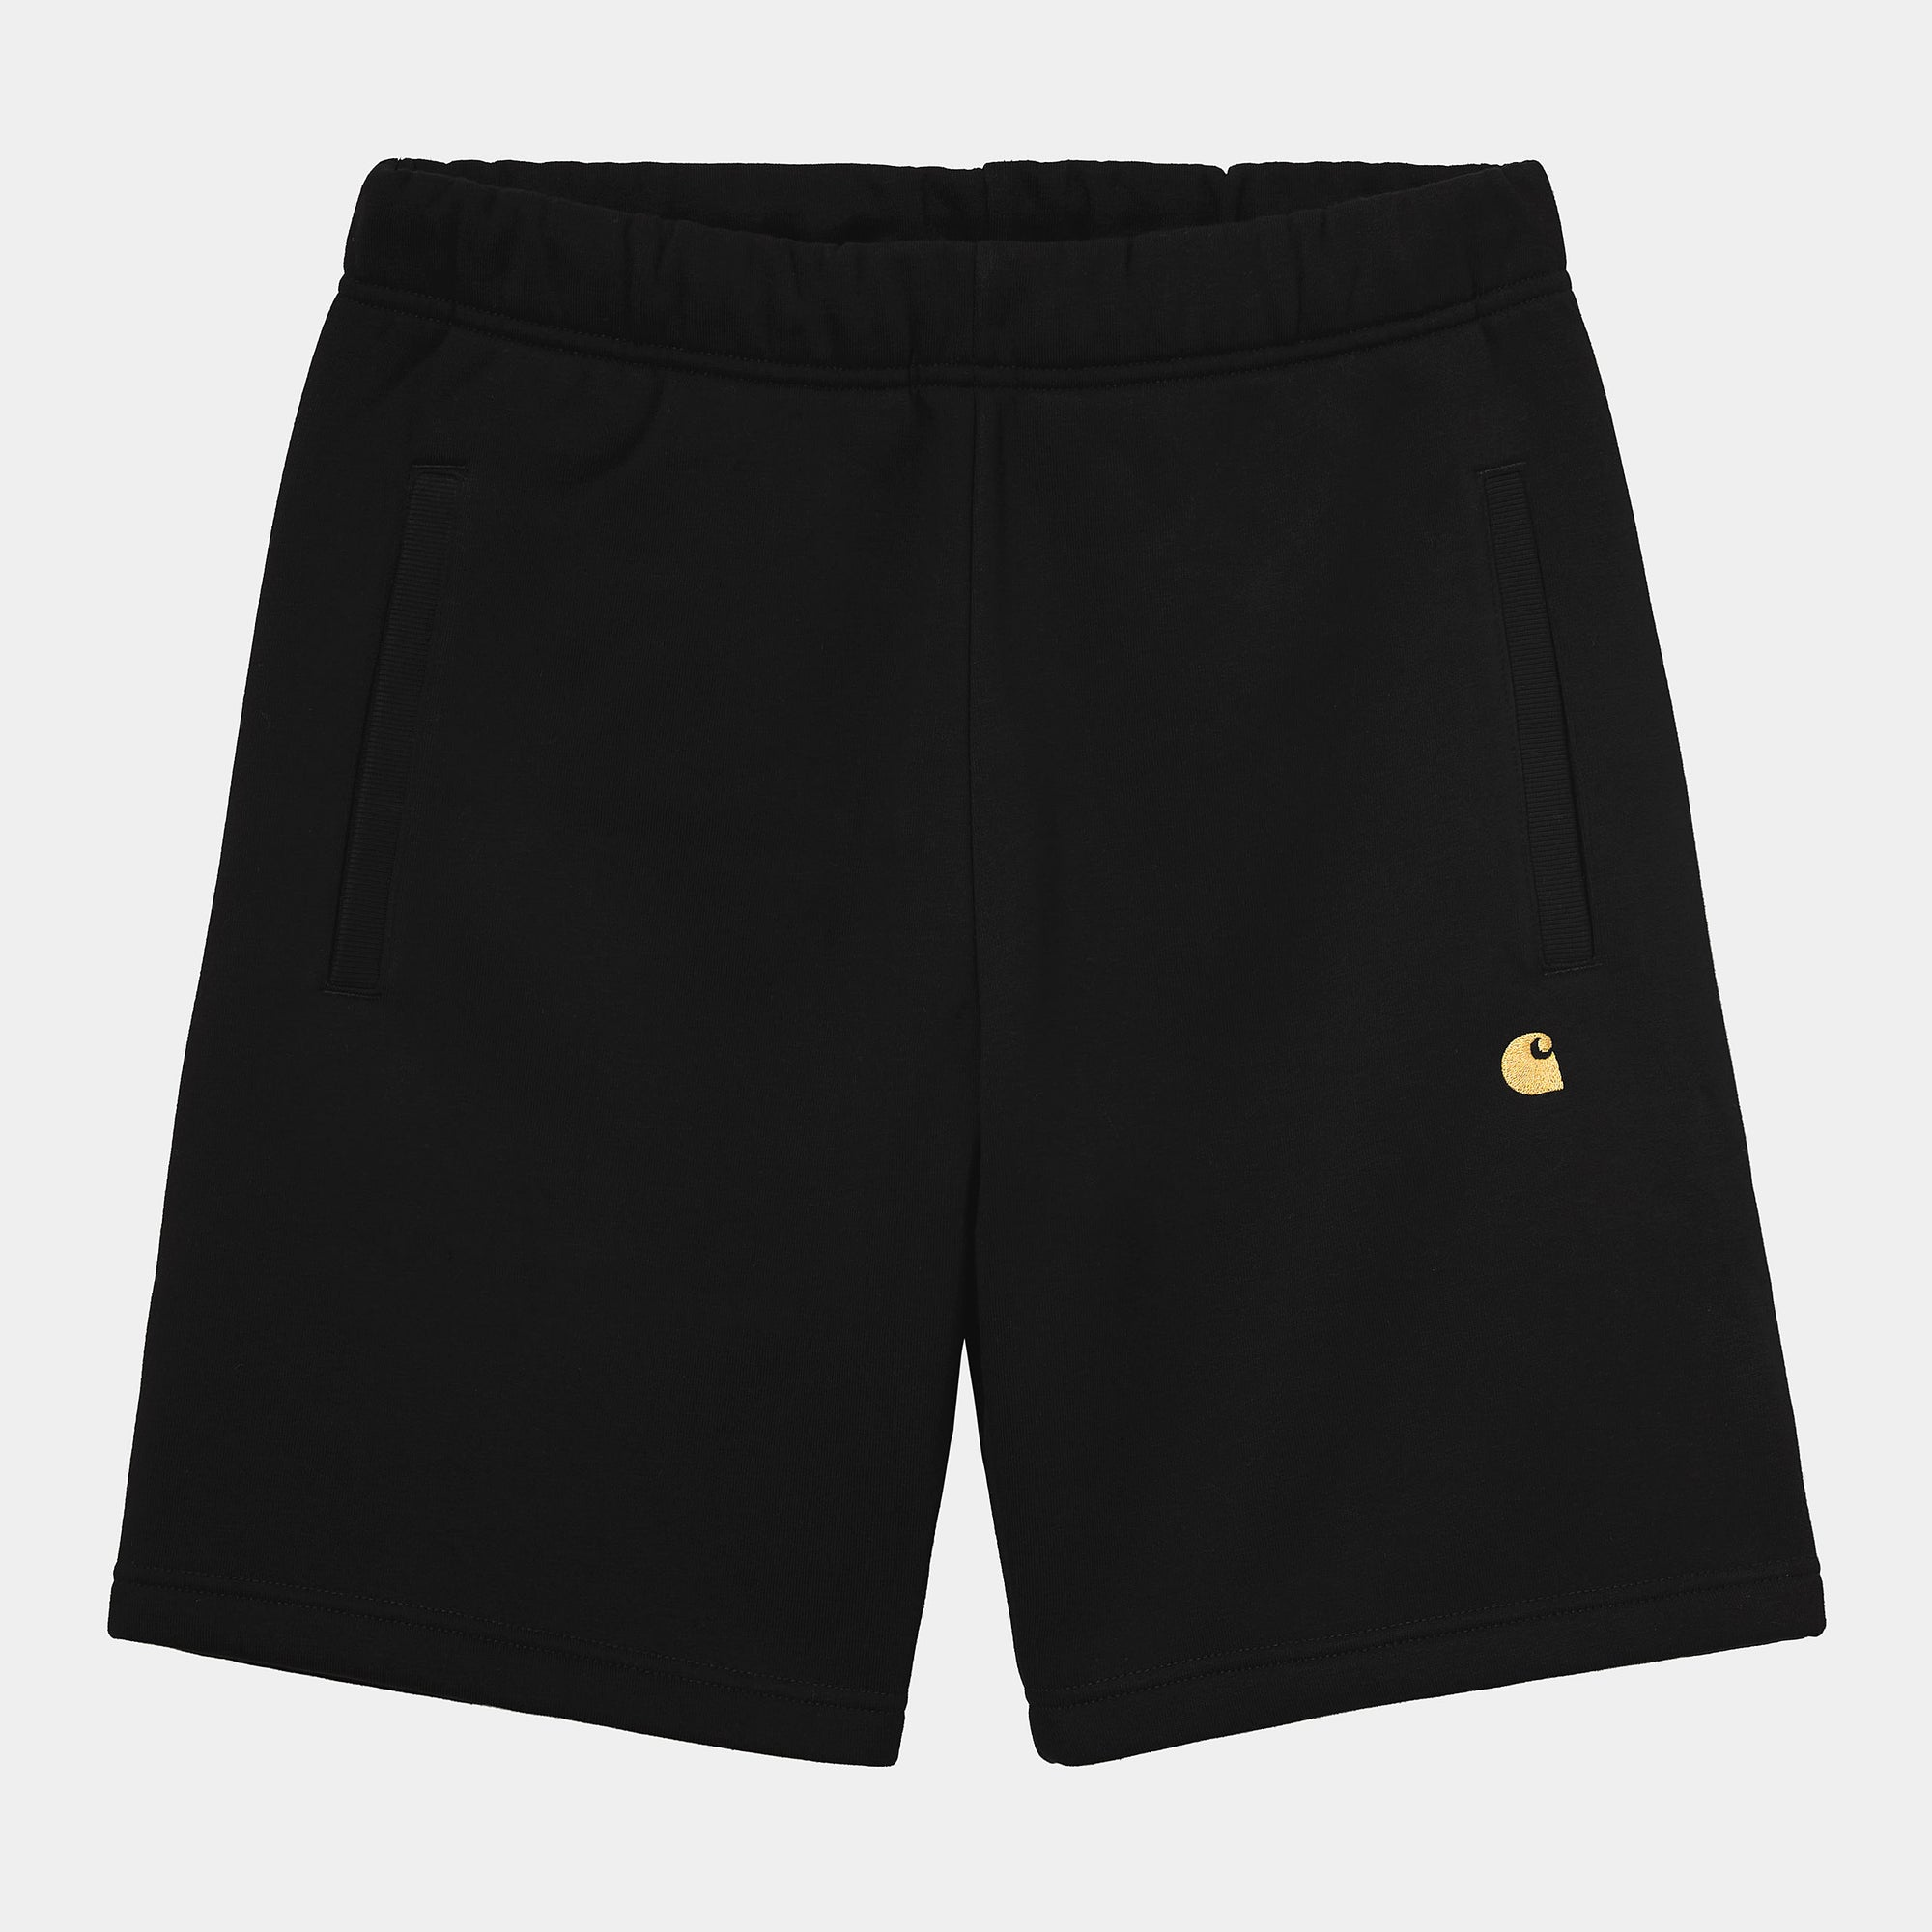 Carhartt WIP Chase Sweat Short - Black